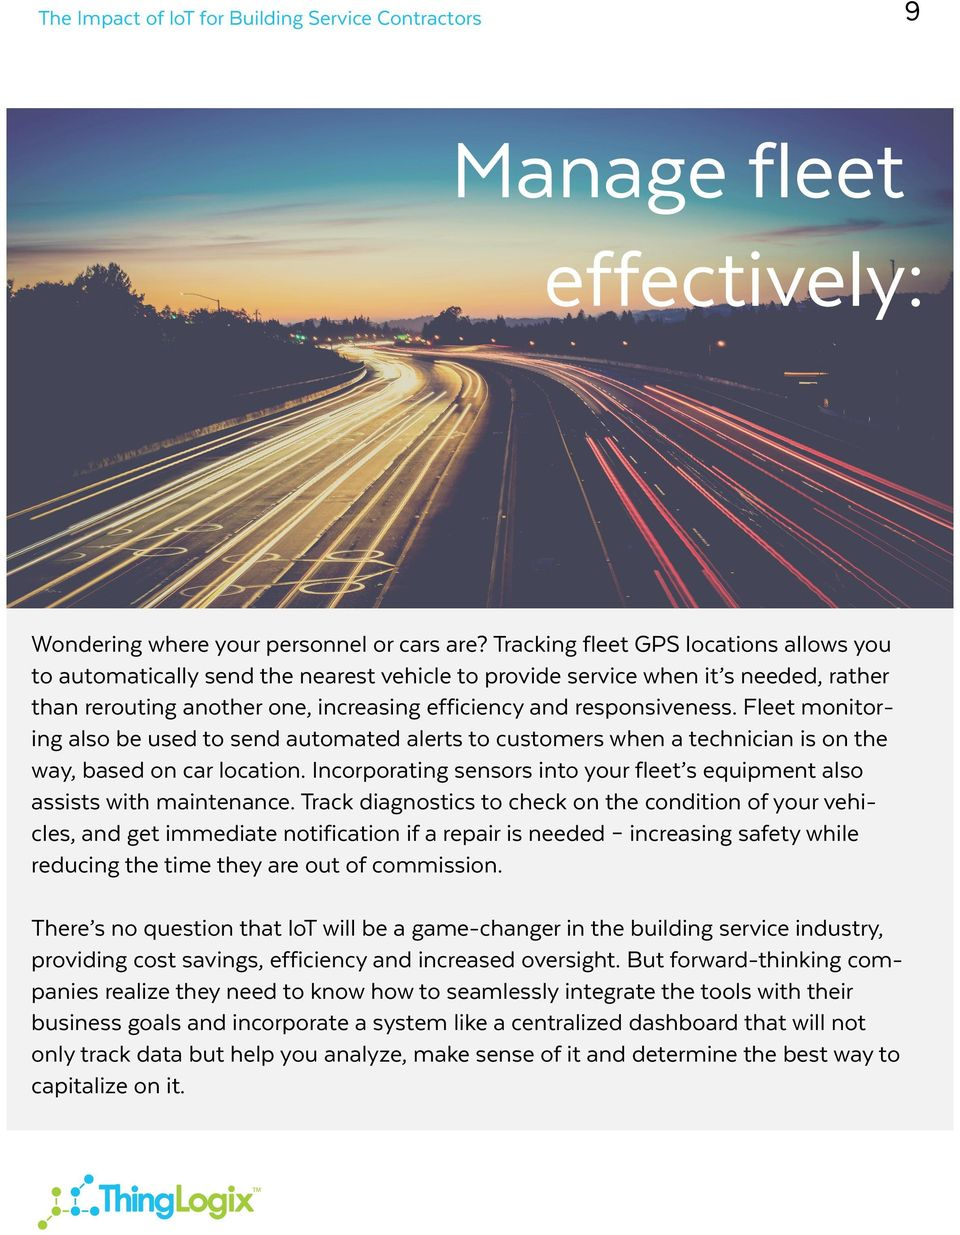 Fleet monitoring also be used to send automated alerts to customers when a technician is on the way, based on car location.